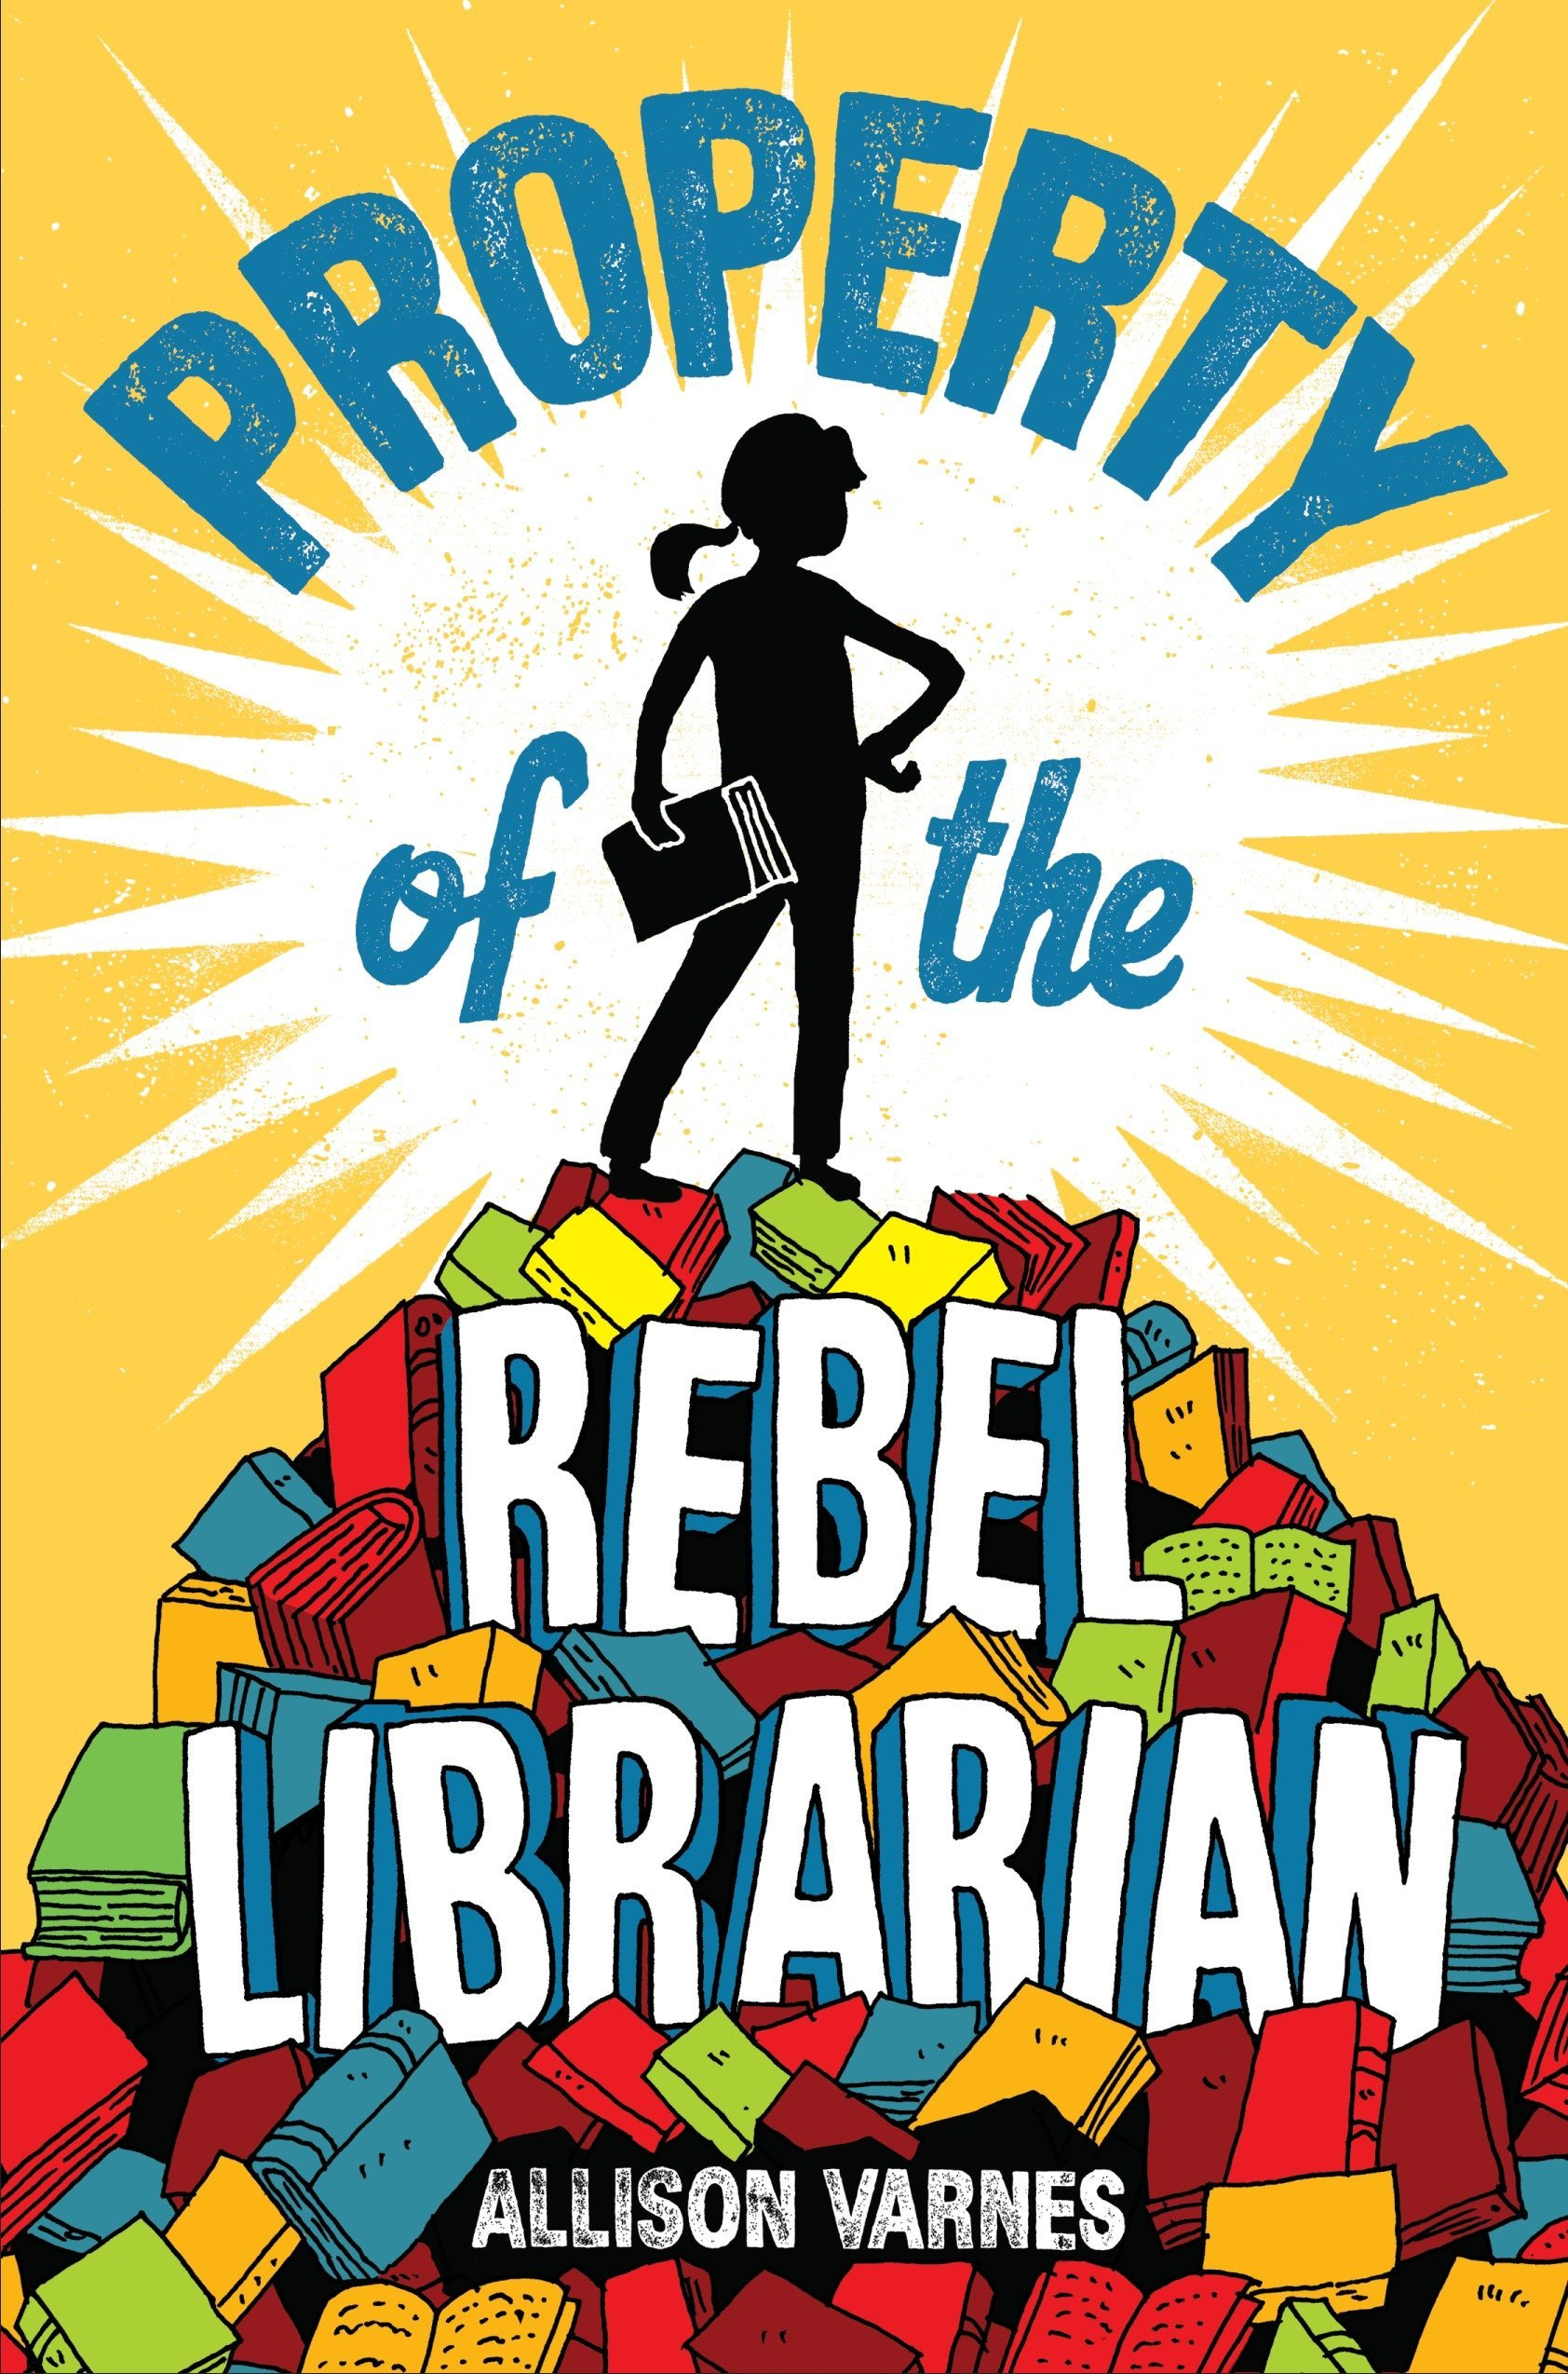 Librarian clipart old school. Property of the rebel